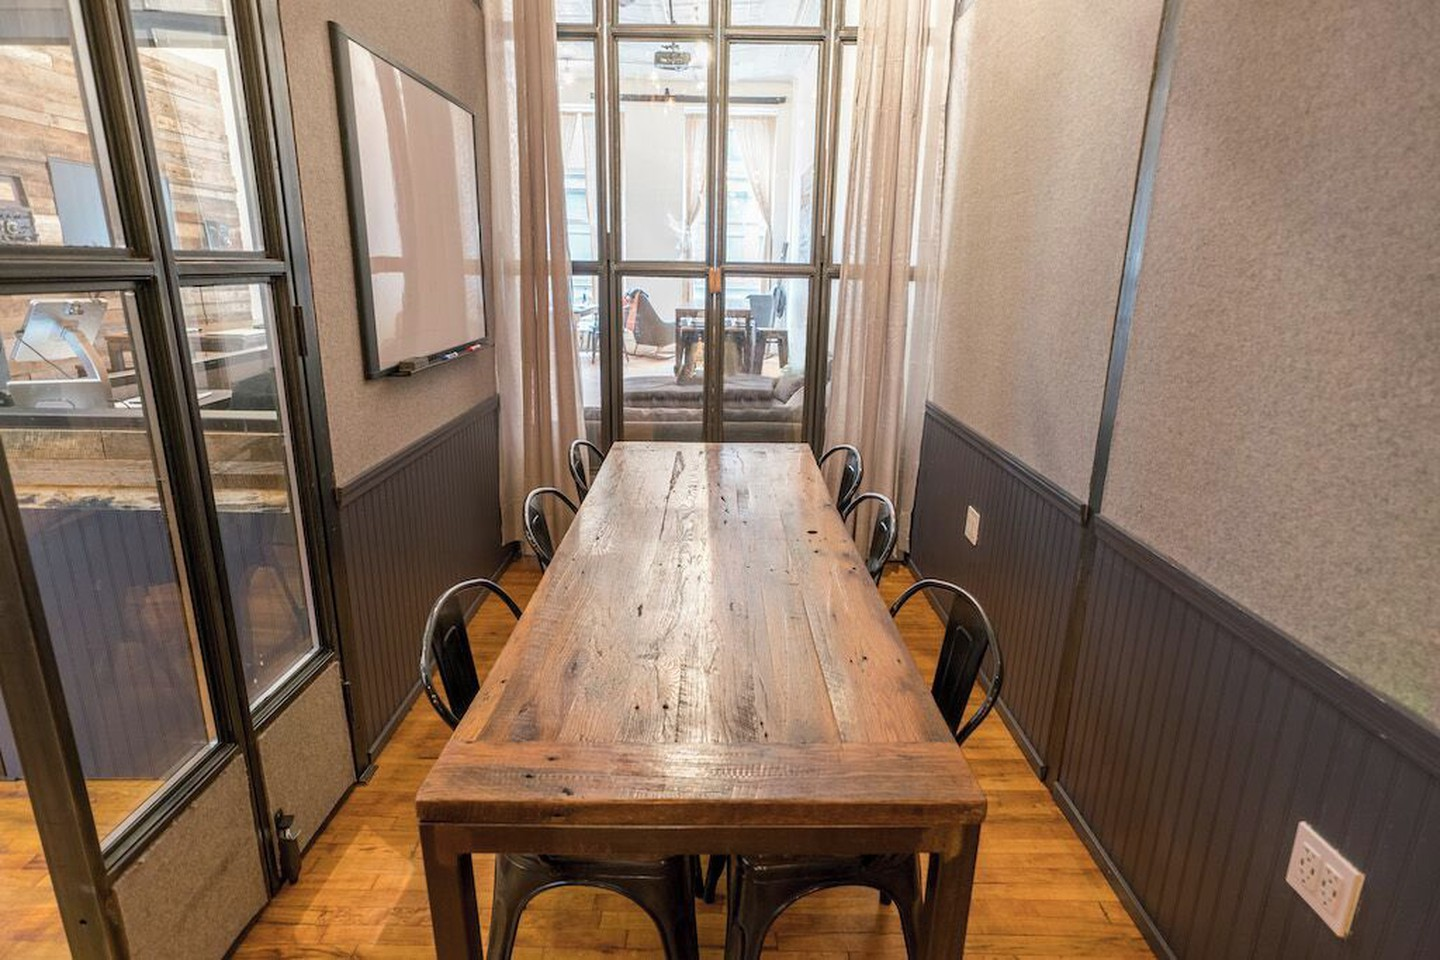 NYC workshop spaces Historic venue The Farm Soho - Conference Room A image 0